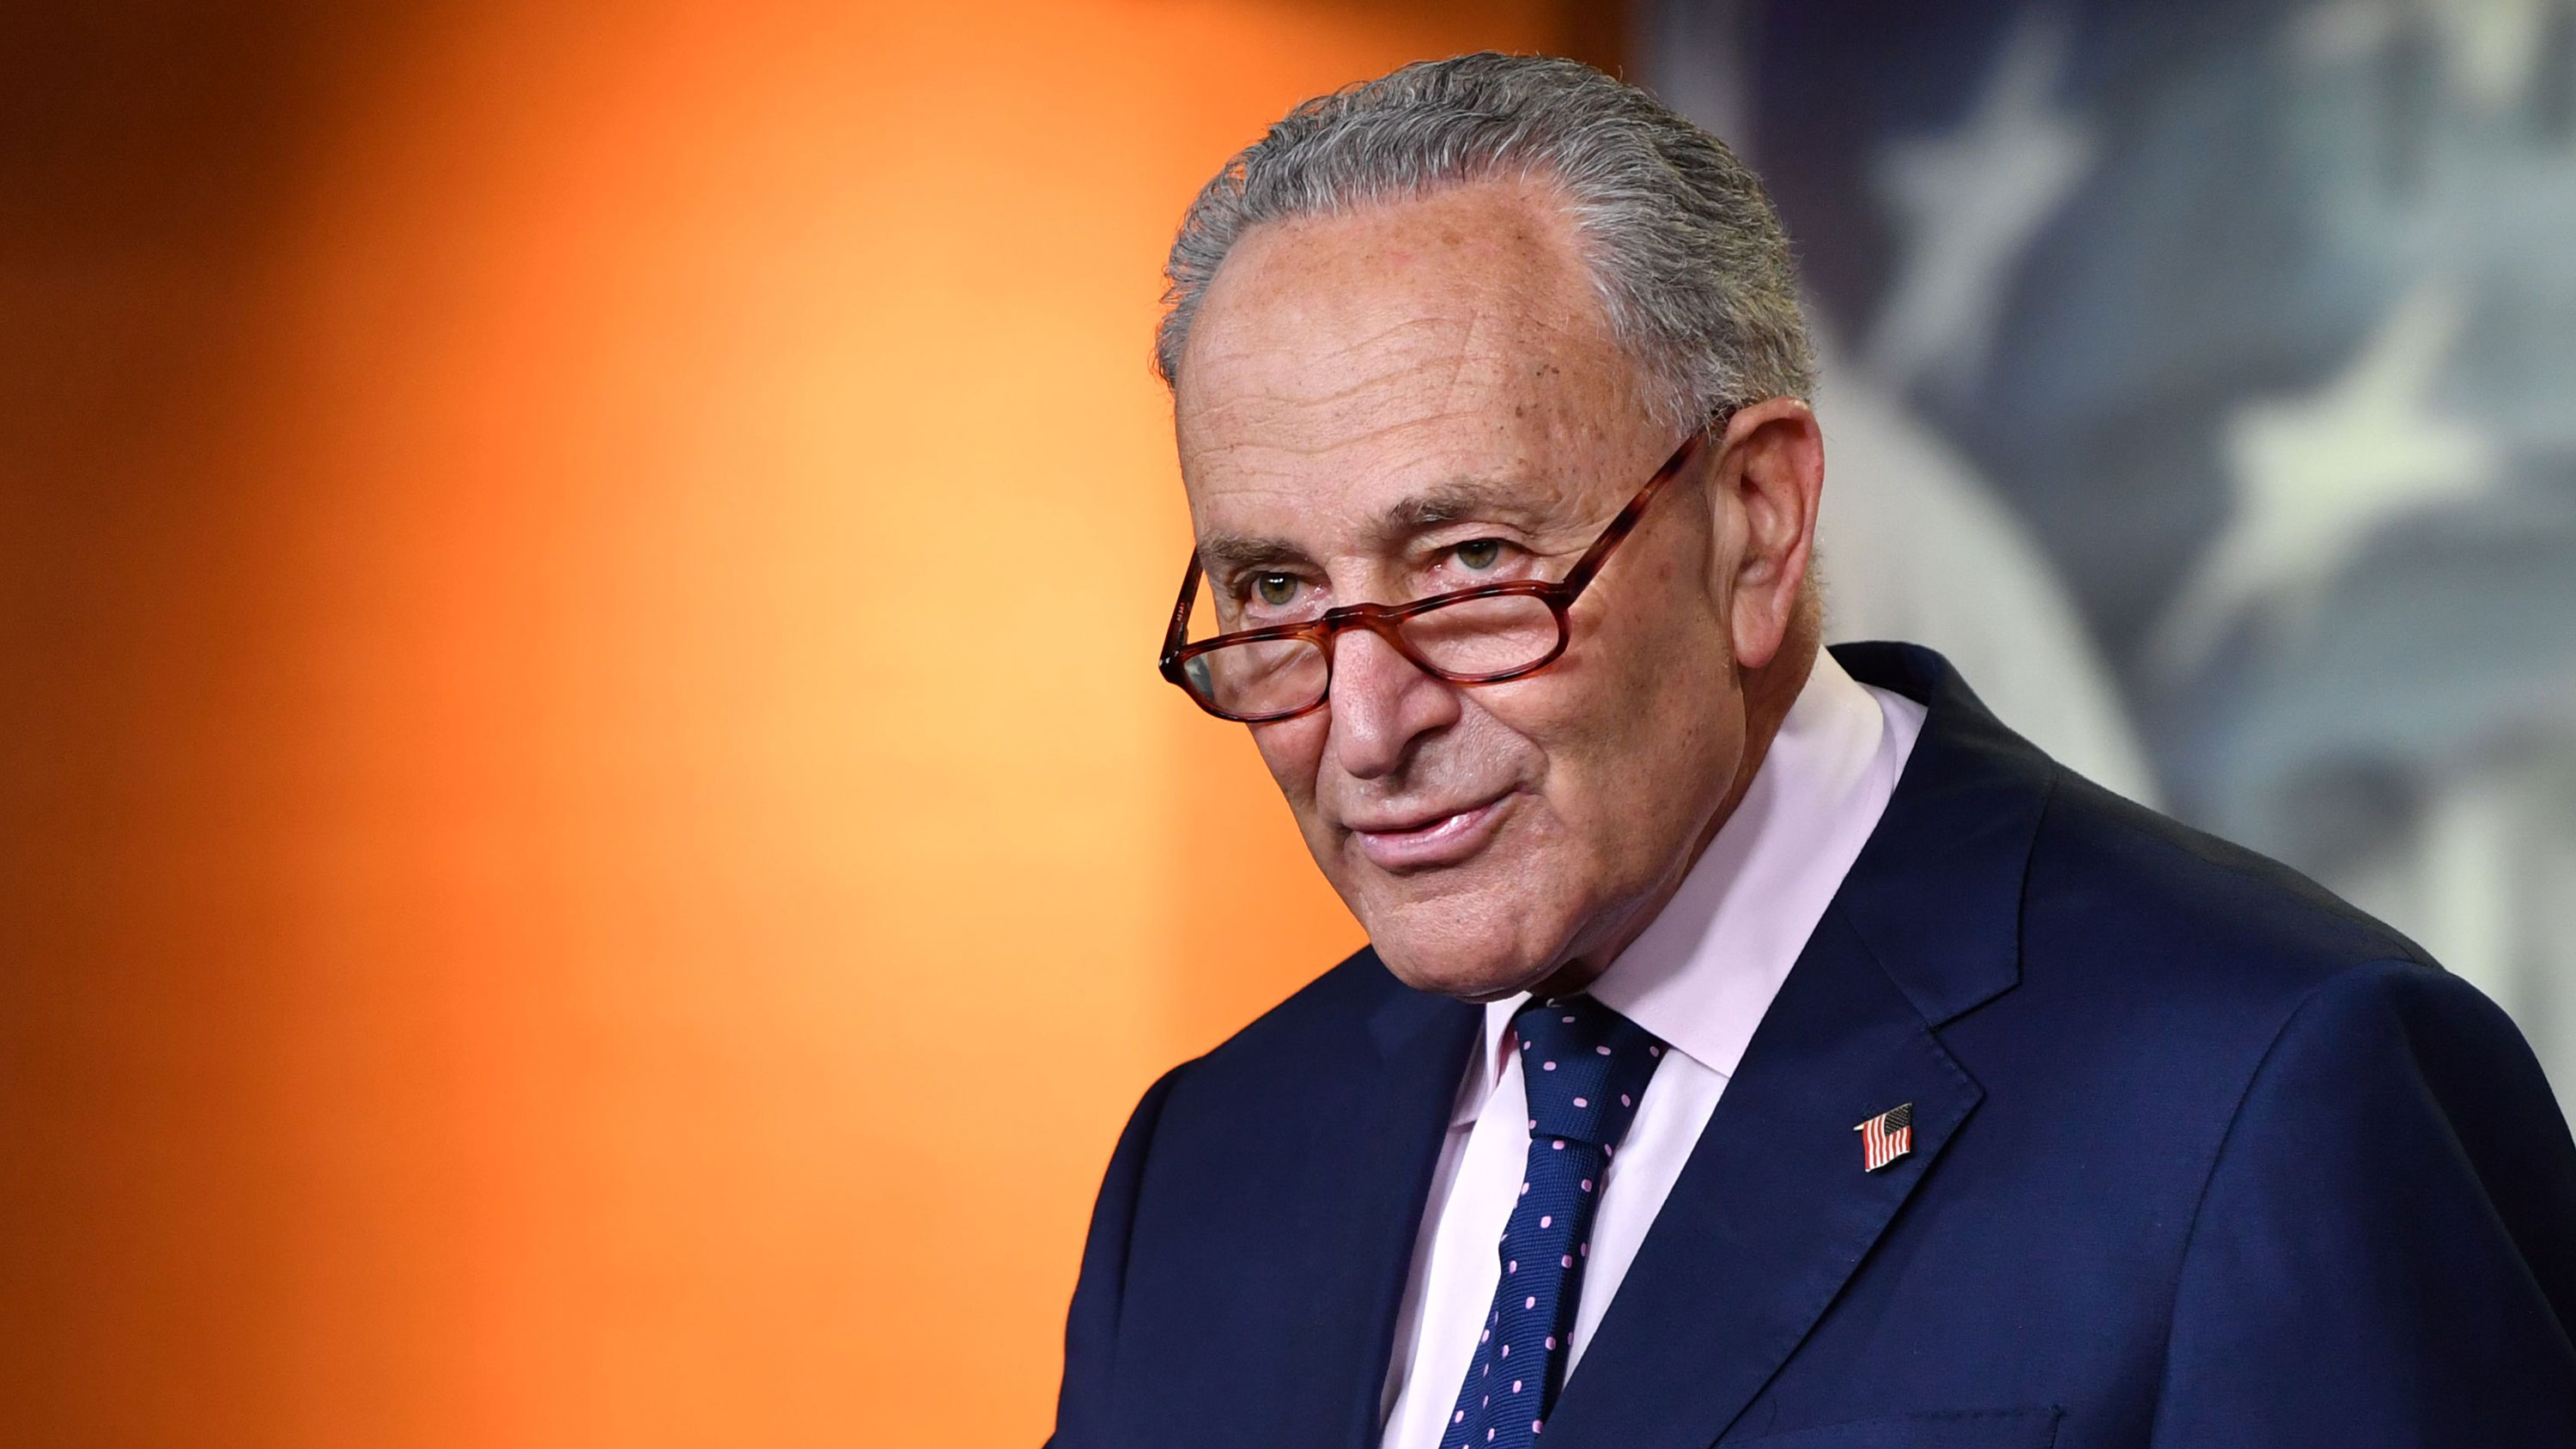 Senate Minority Leader Chuck Schumer attends Speaker of the House Nancy Pelosi's weekly press briefing on July 23 in Washington, DC.